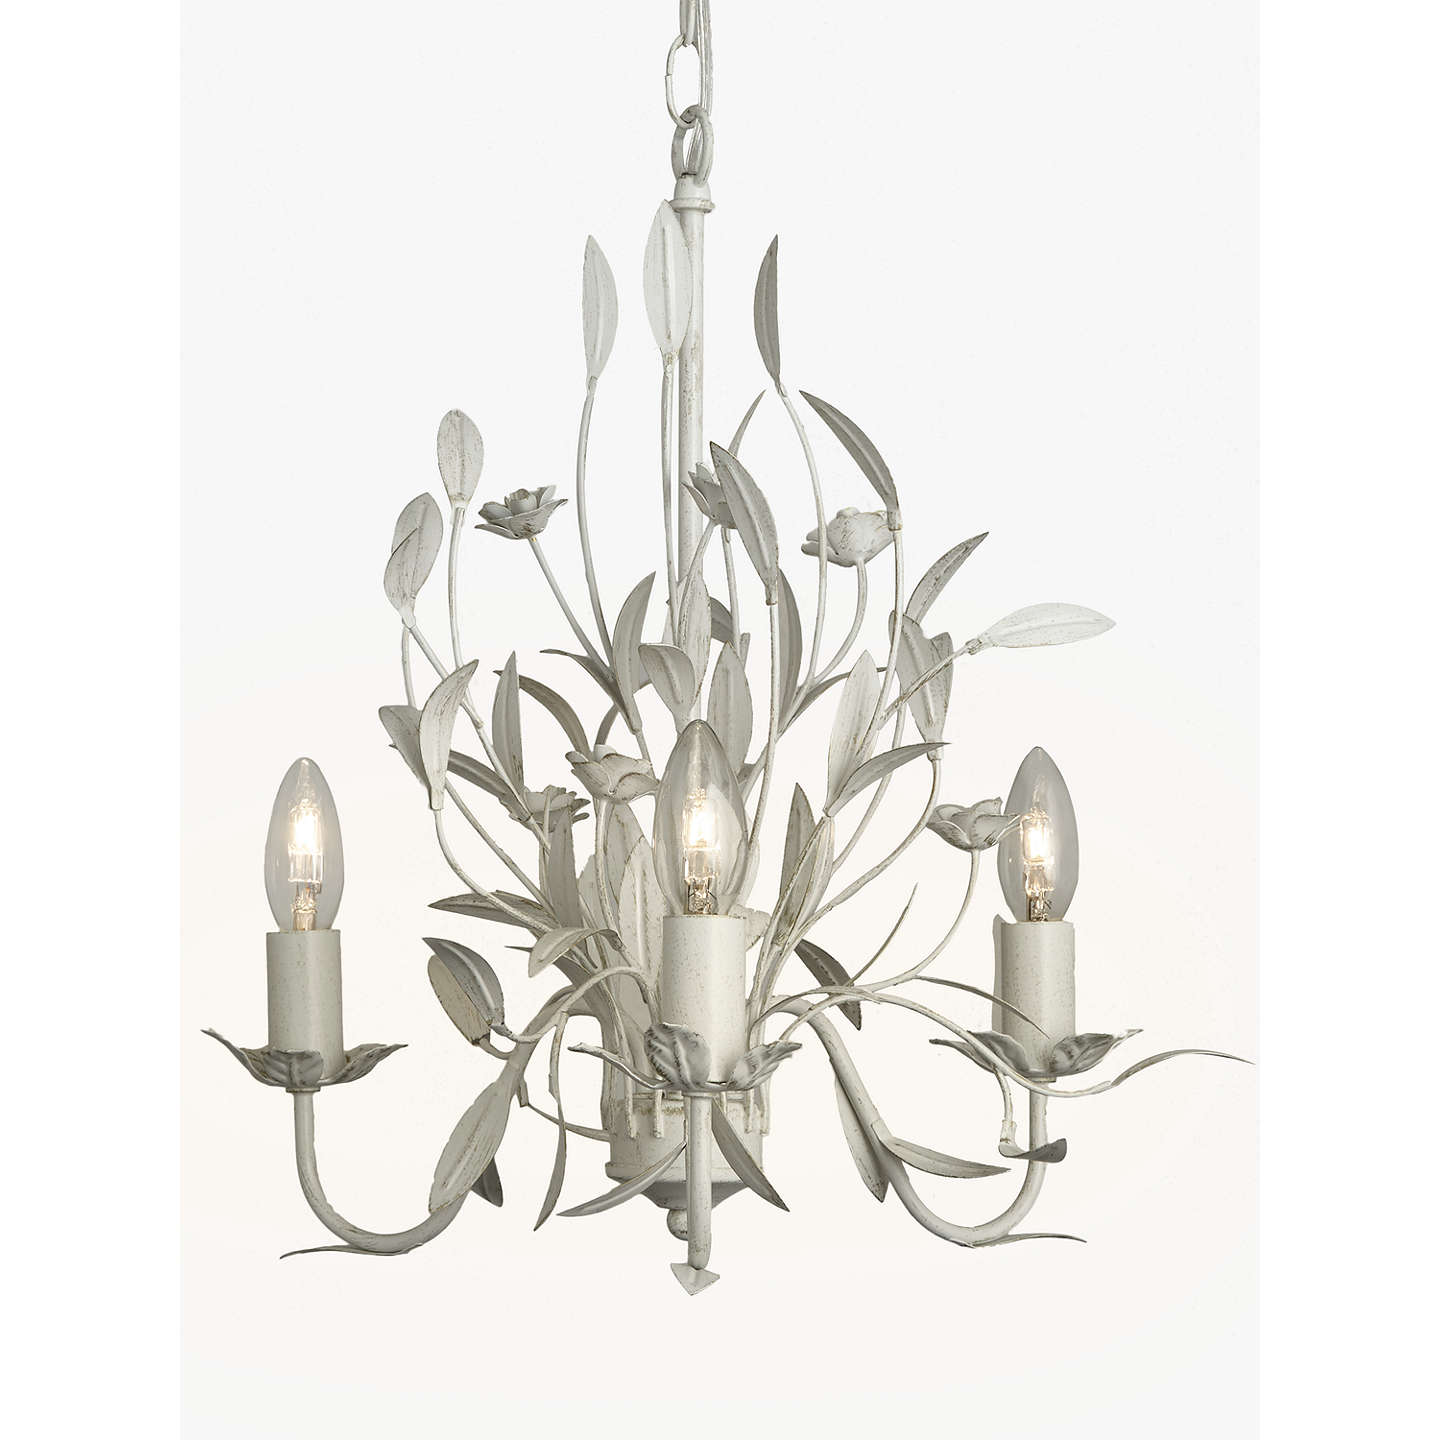 John lewis lily ceiling light 3 arm ivory at john lewis buyjohn lewis lily ceiling light 3 arm ivory online at johnlewis aloadofball Gallery